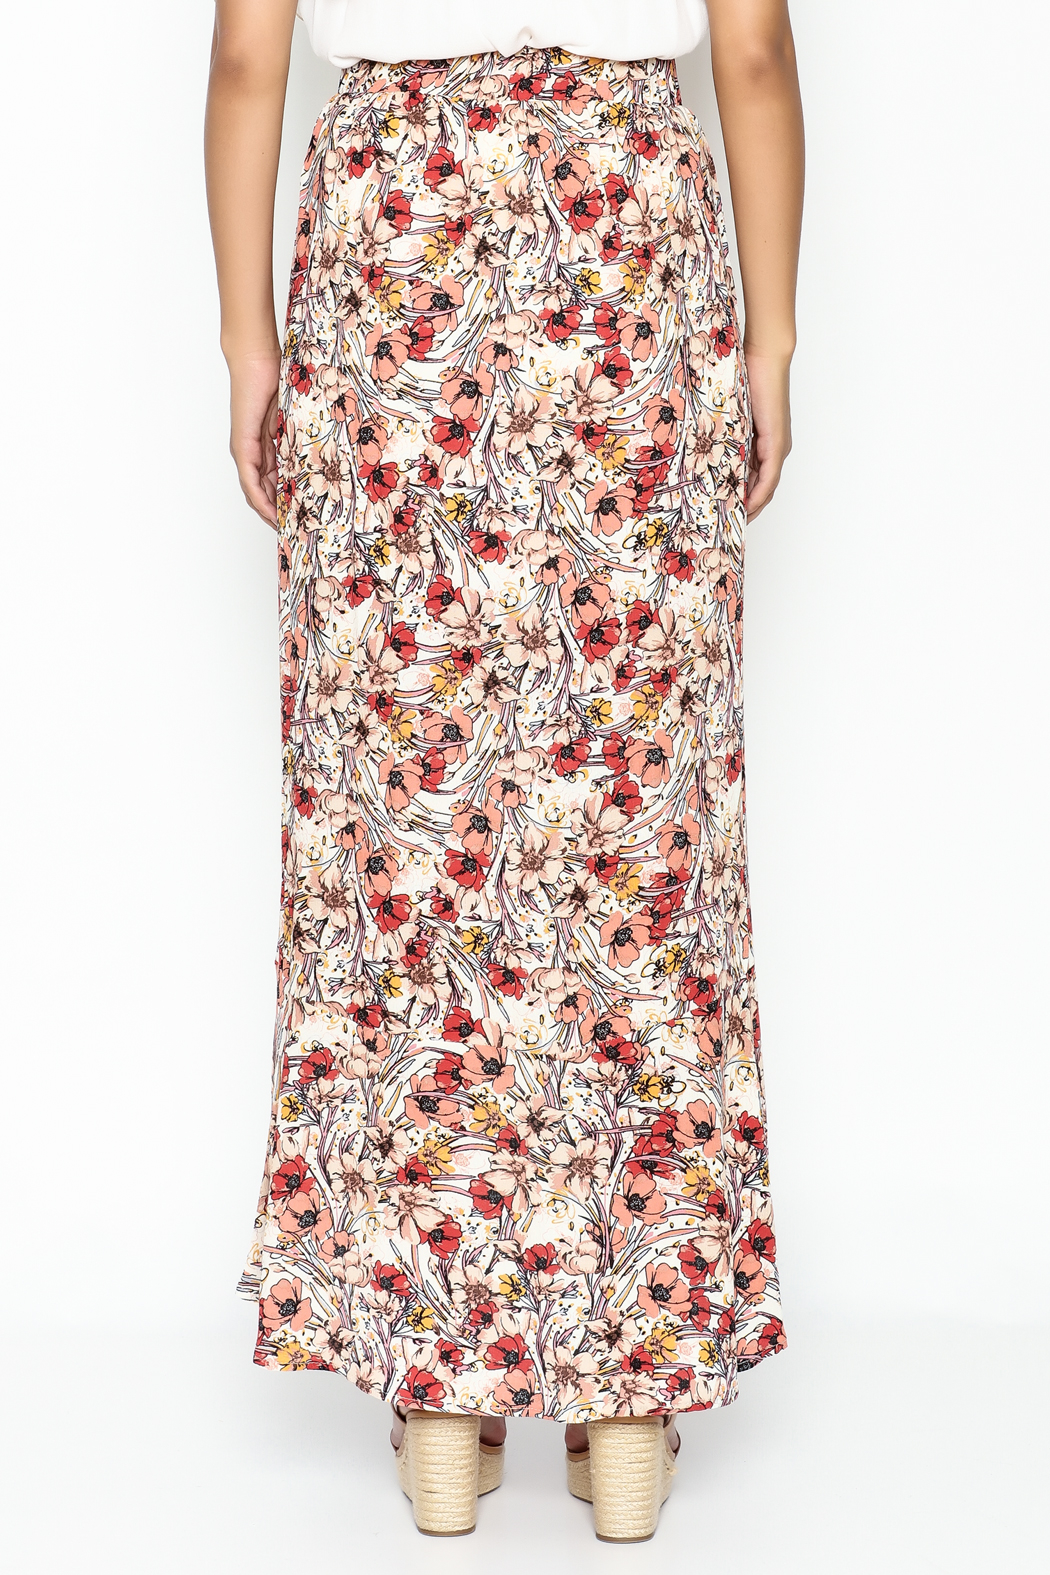 lelis Floral Wrap Skirt - Back Cropped Image